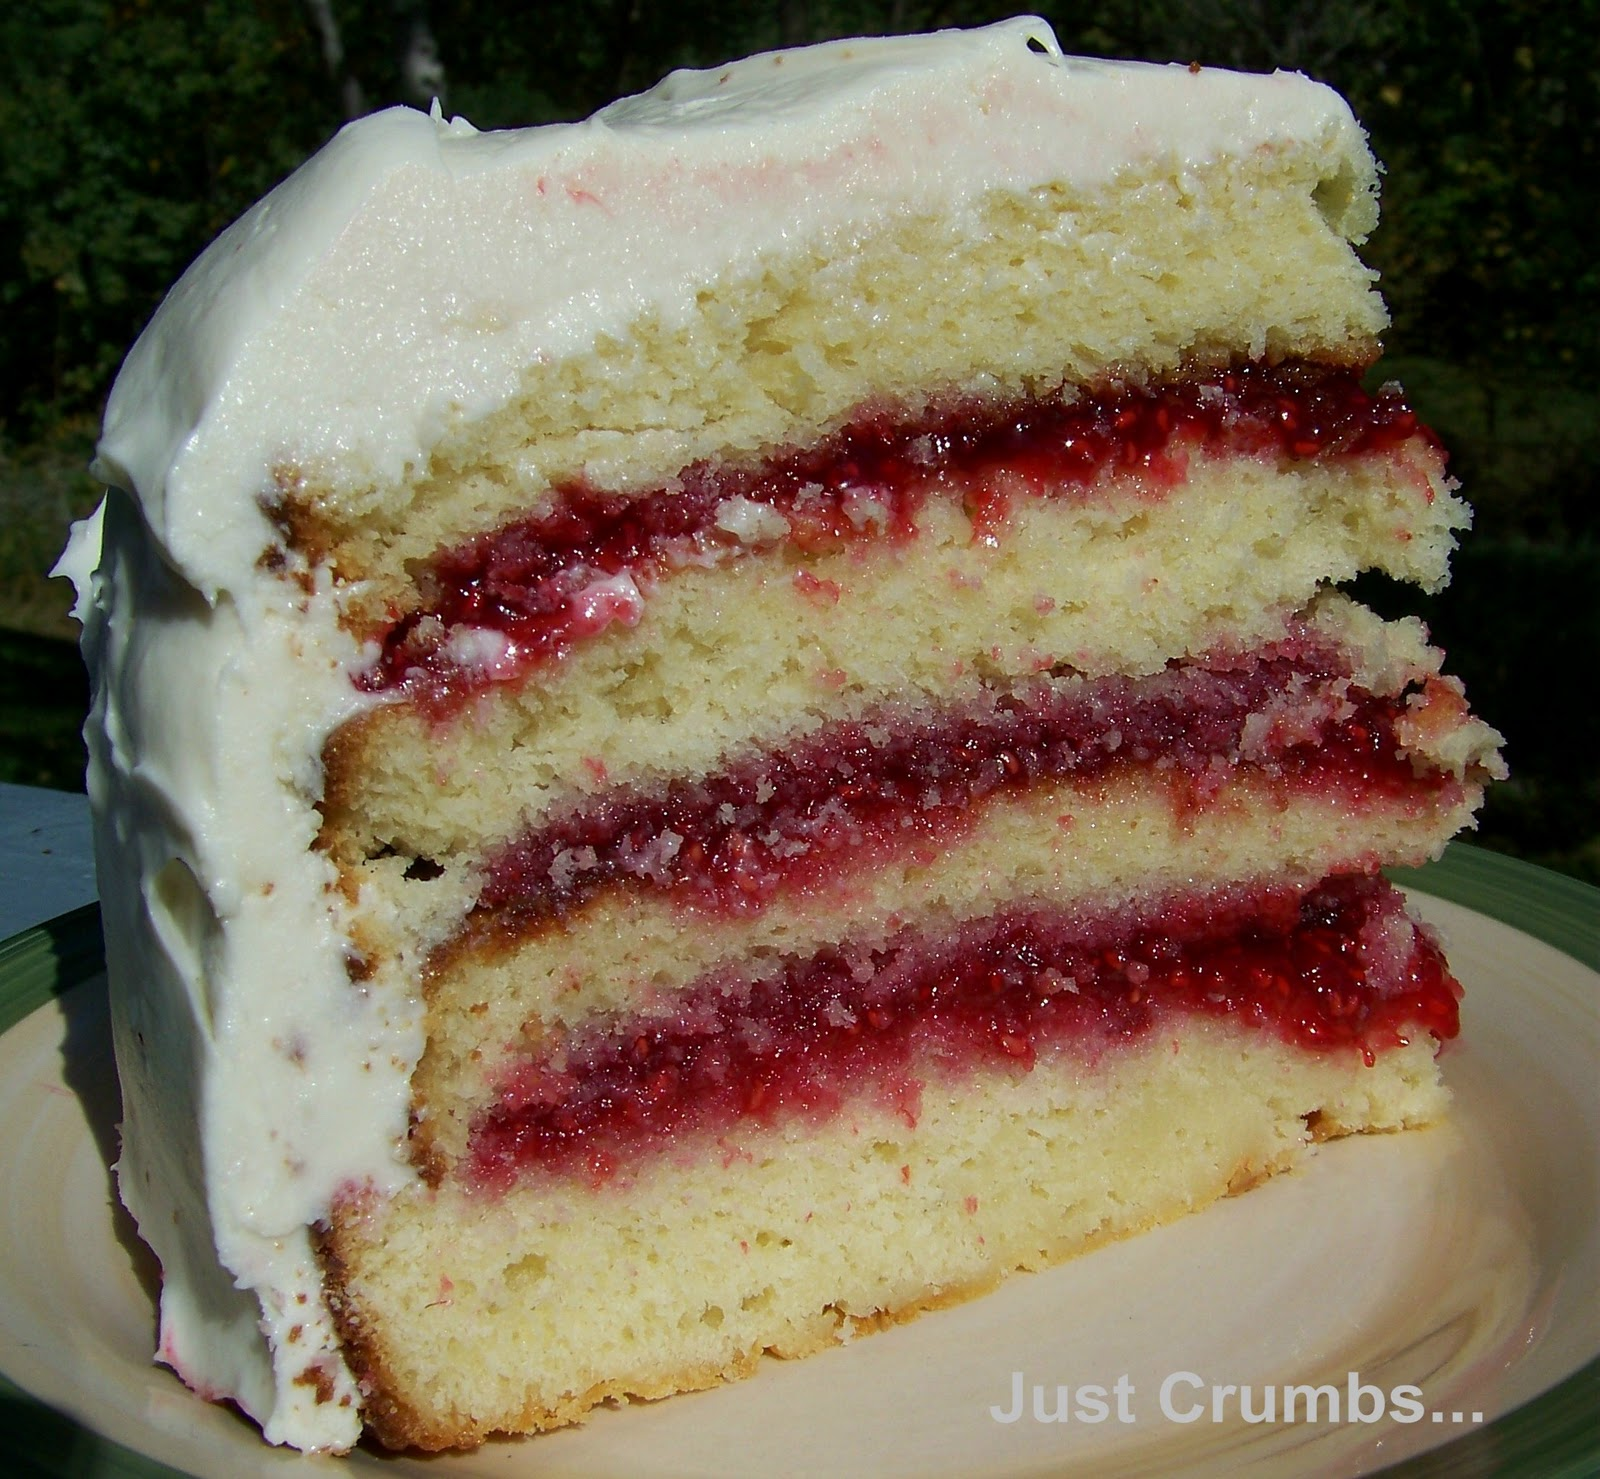 Just Crumbs...: White Chocolate Cake with Raspberry Filling